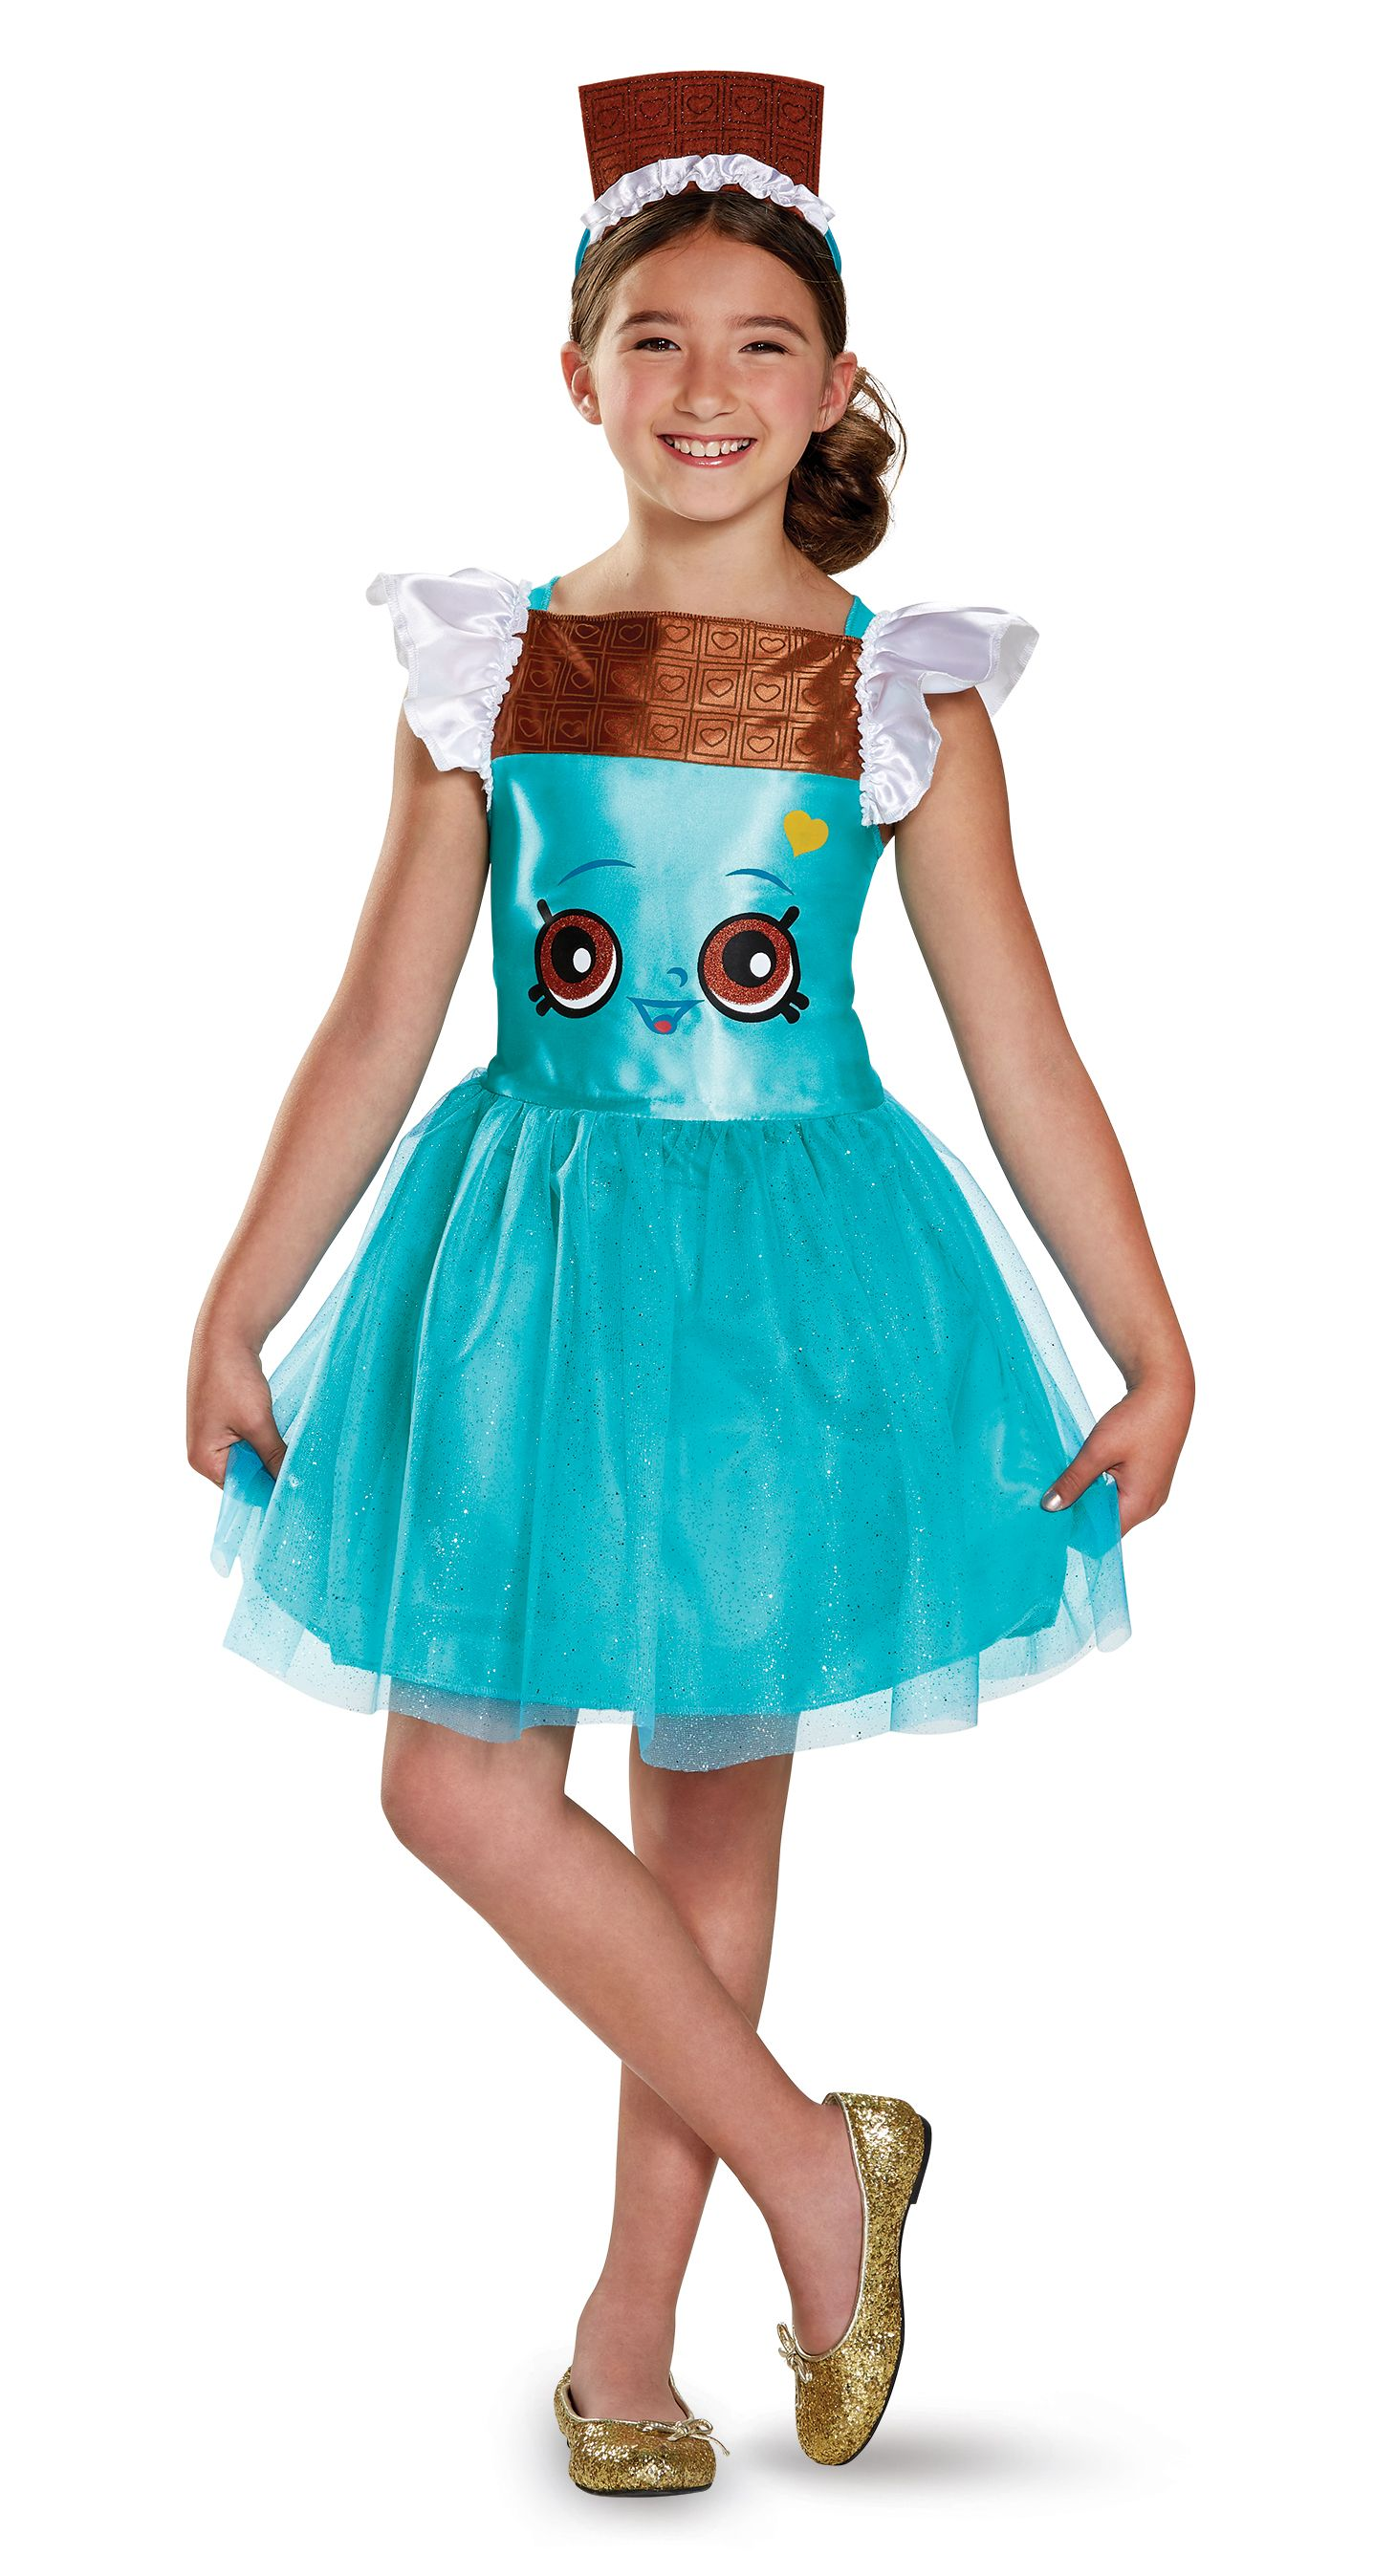 Cheeky Chocolate Classic Costume   Wally\'s Party Factory ...